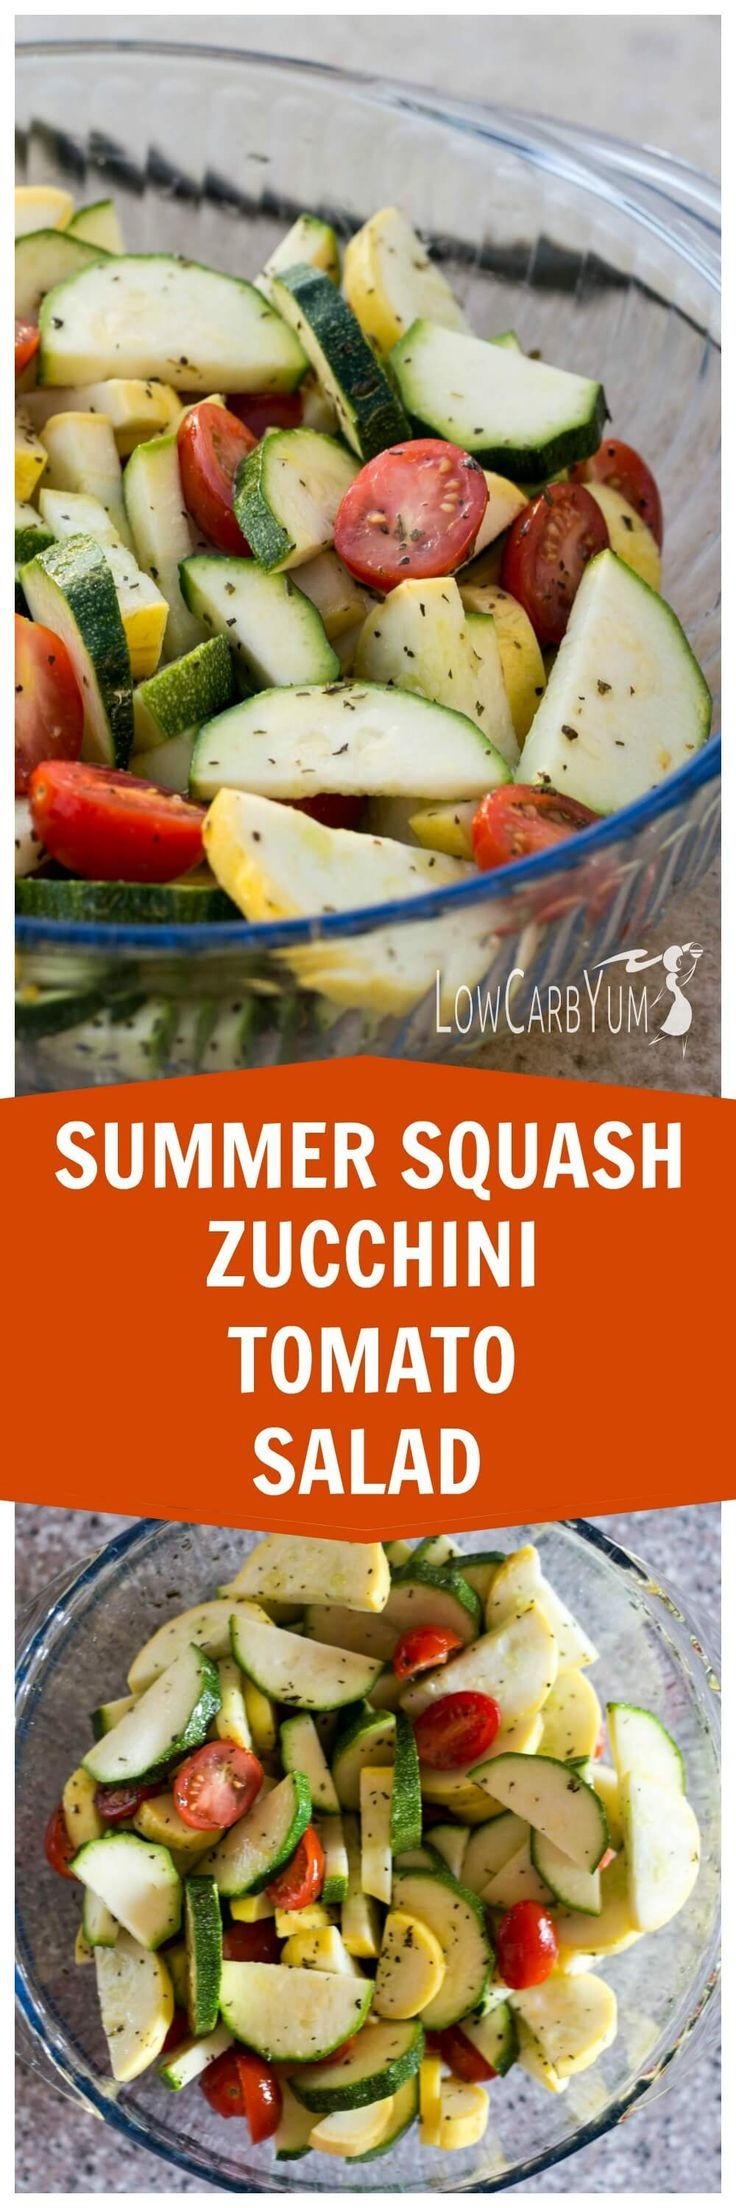 A stevia sweetened dressing coats vegetables in this simple squash zucchini tomato salad. This is a great potluck dish to show off your summer garden crop. http://LowCarbYum.com